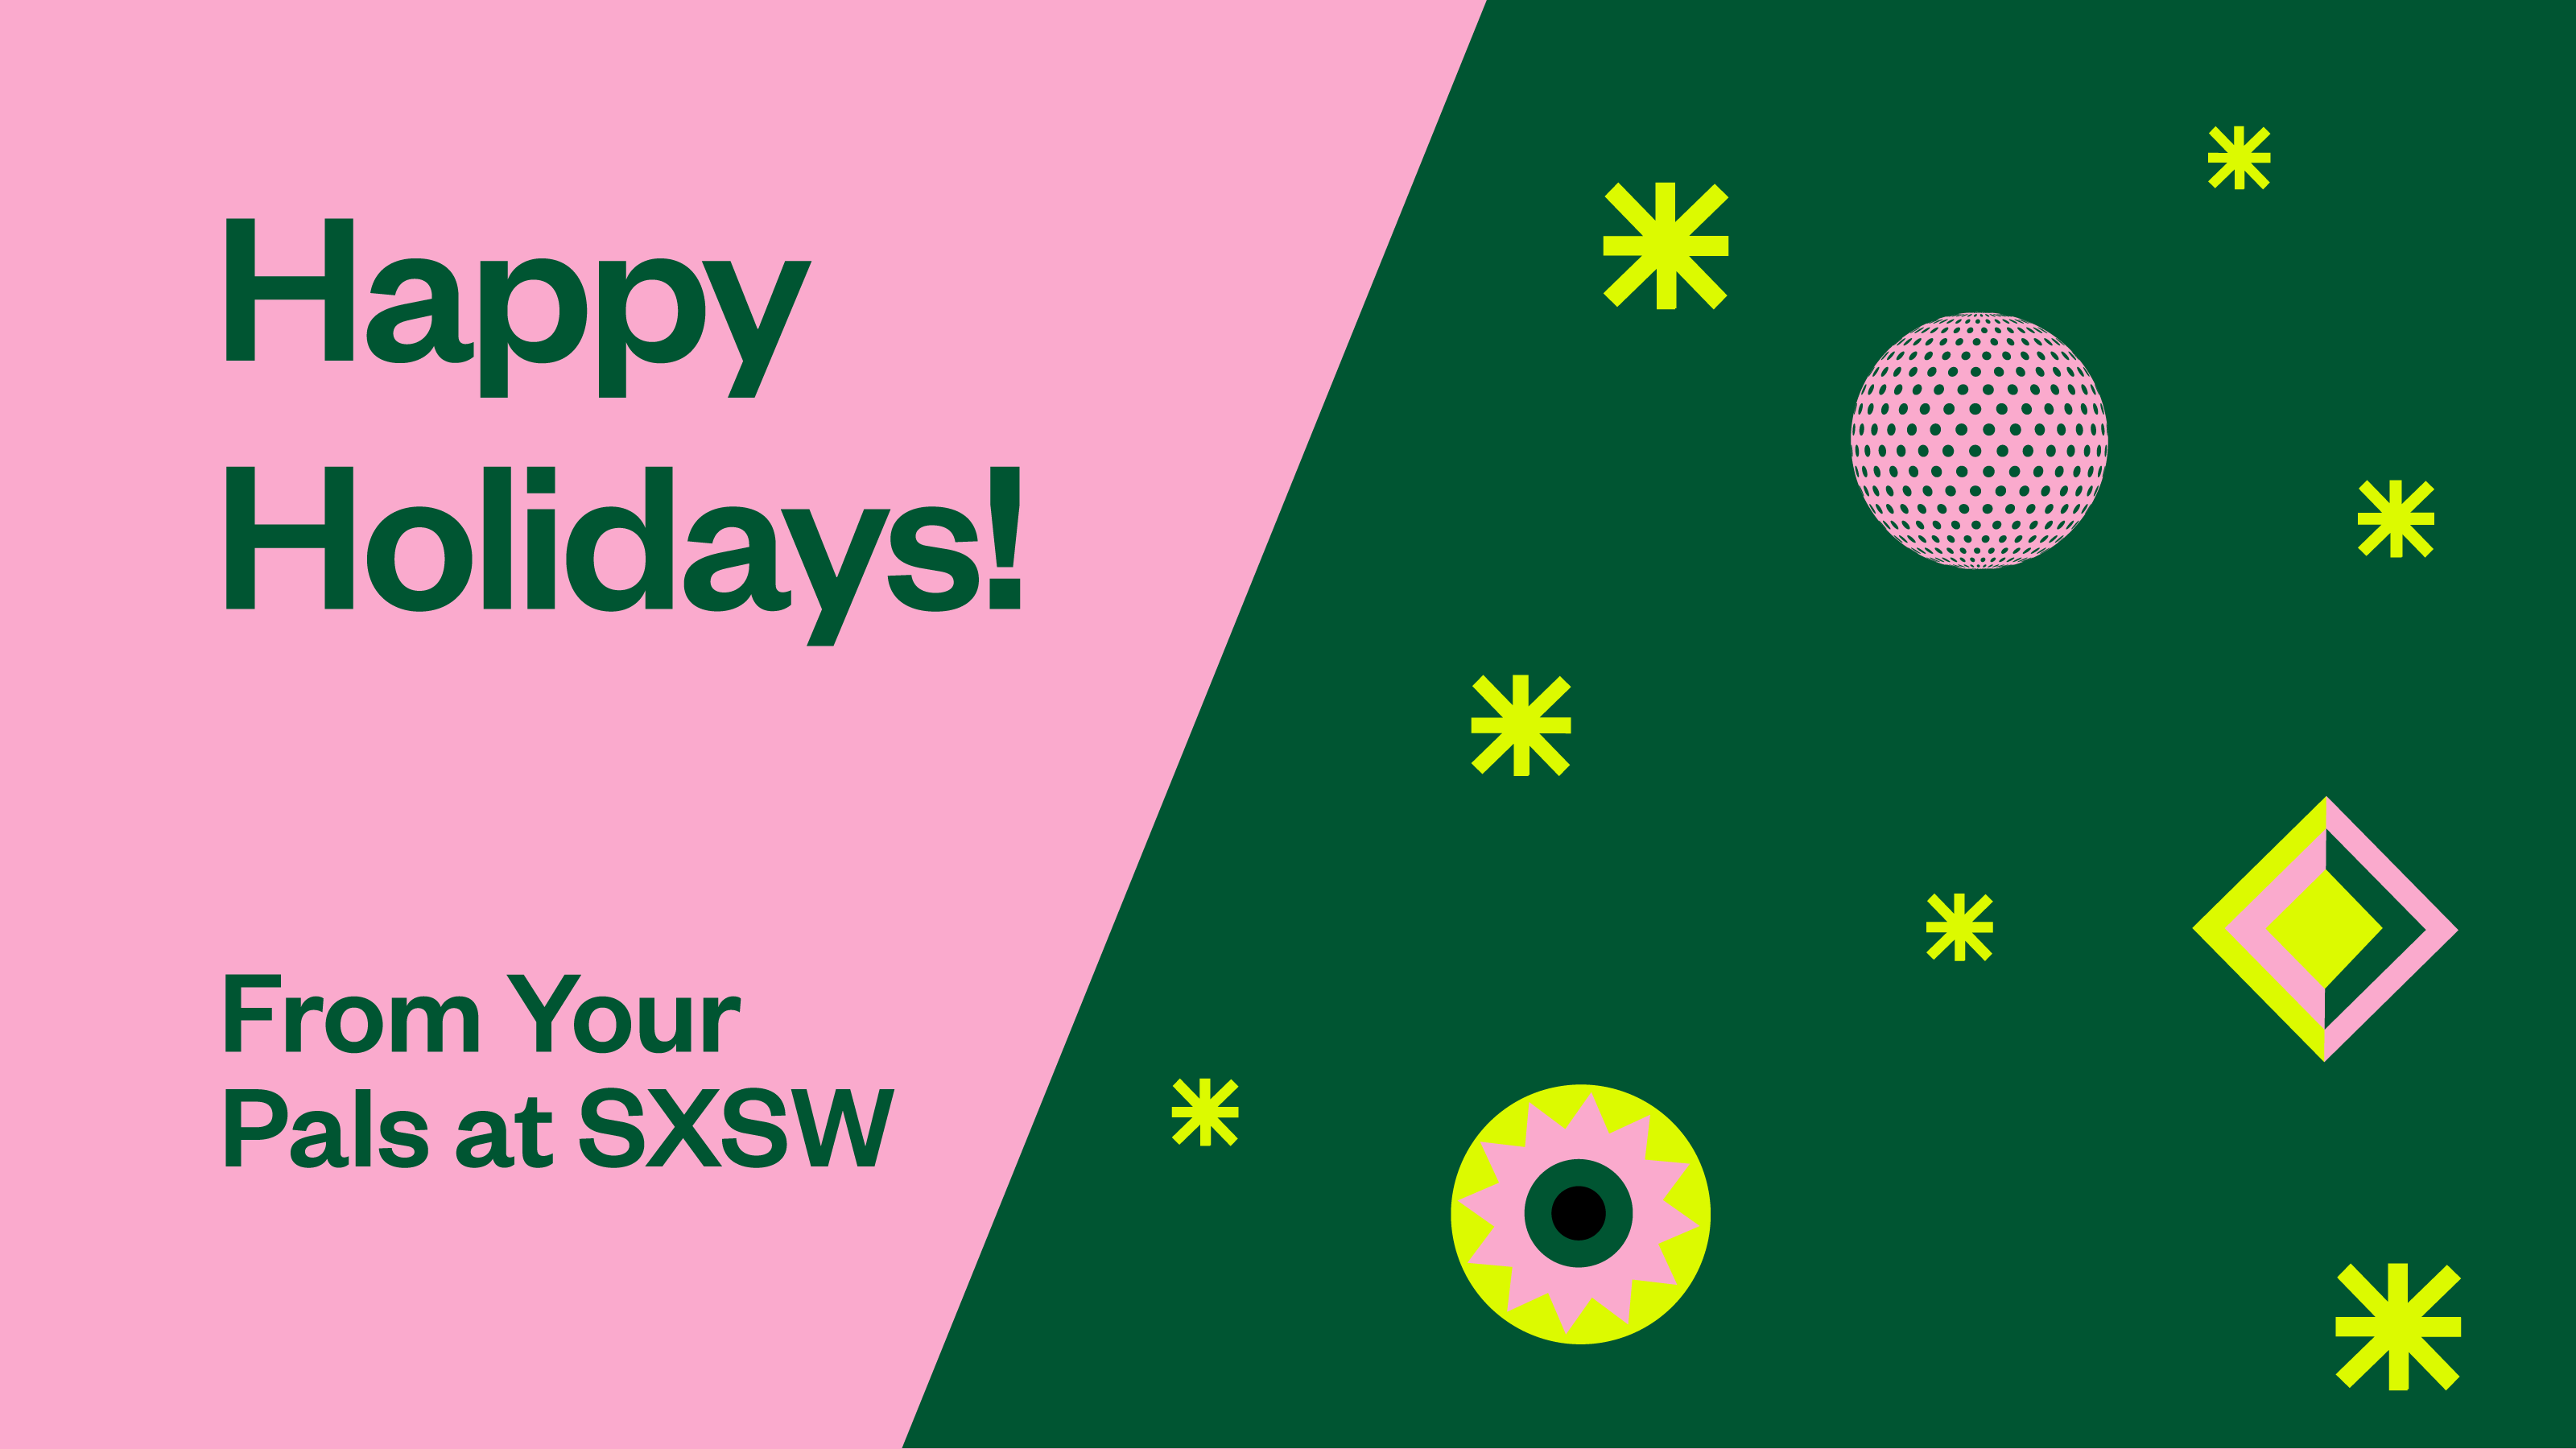 Happy Holidays from SXSW  Featured Speakers, Merch...